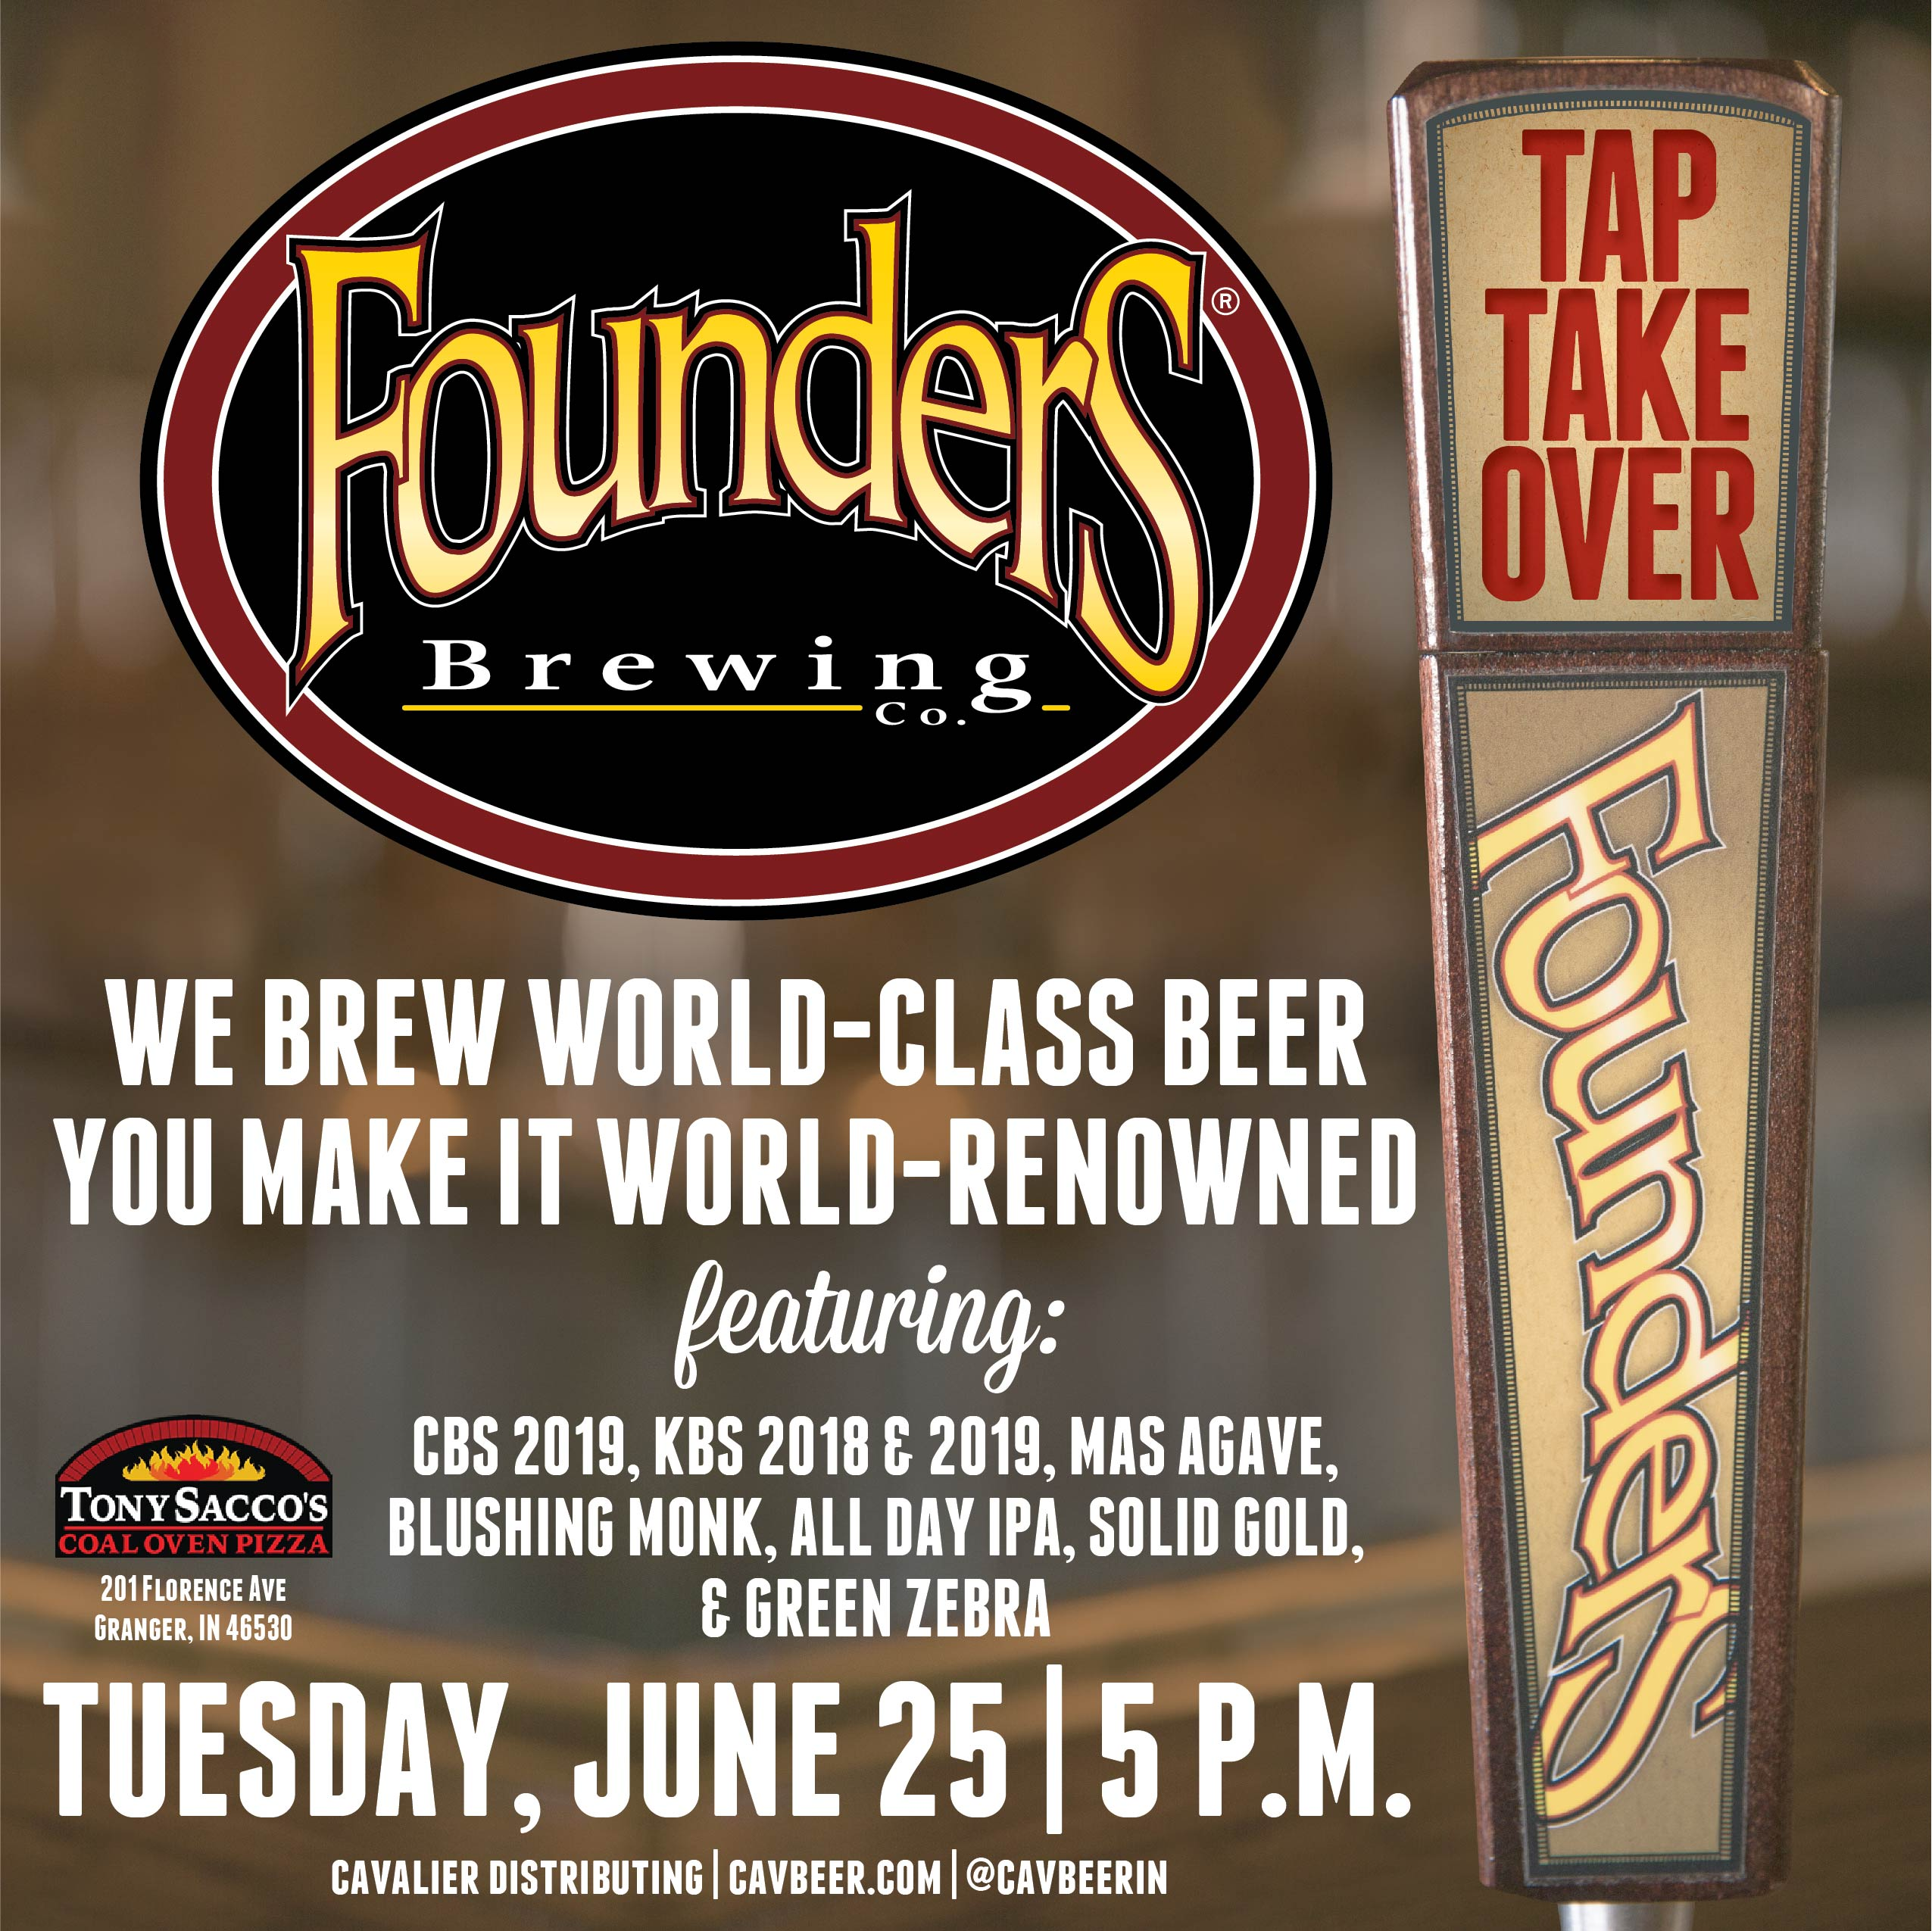 Founder's Tap Takeover @ Tony Sacco's